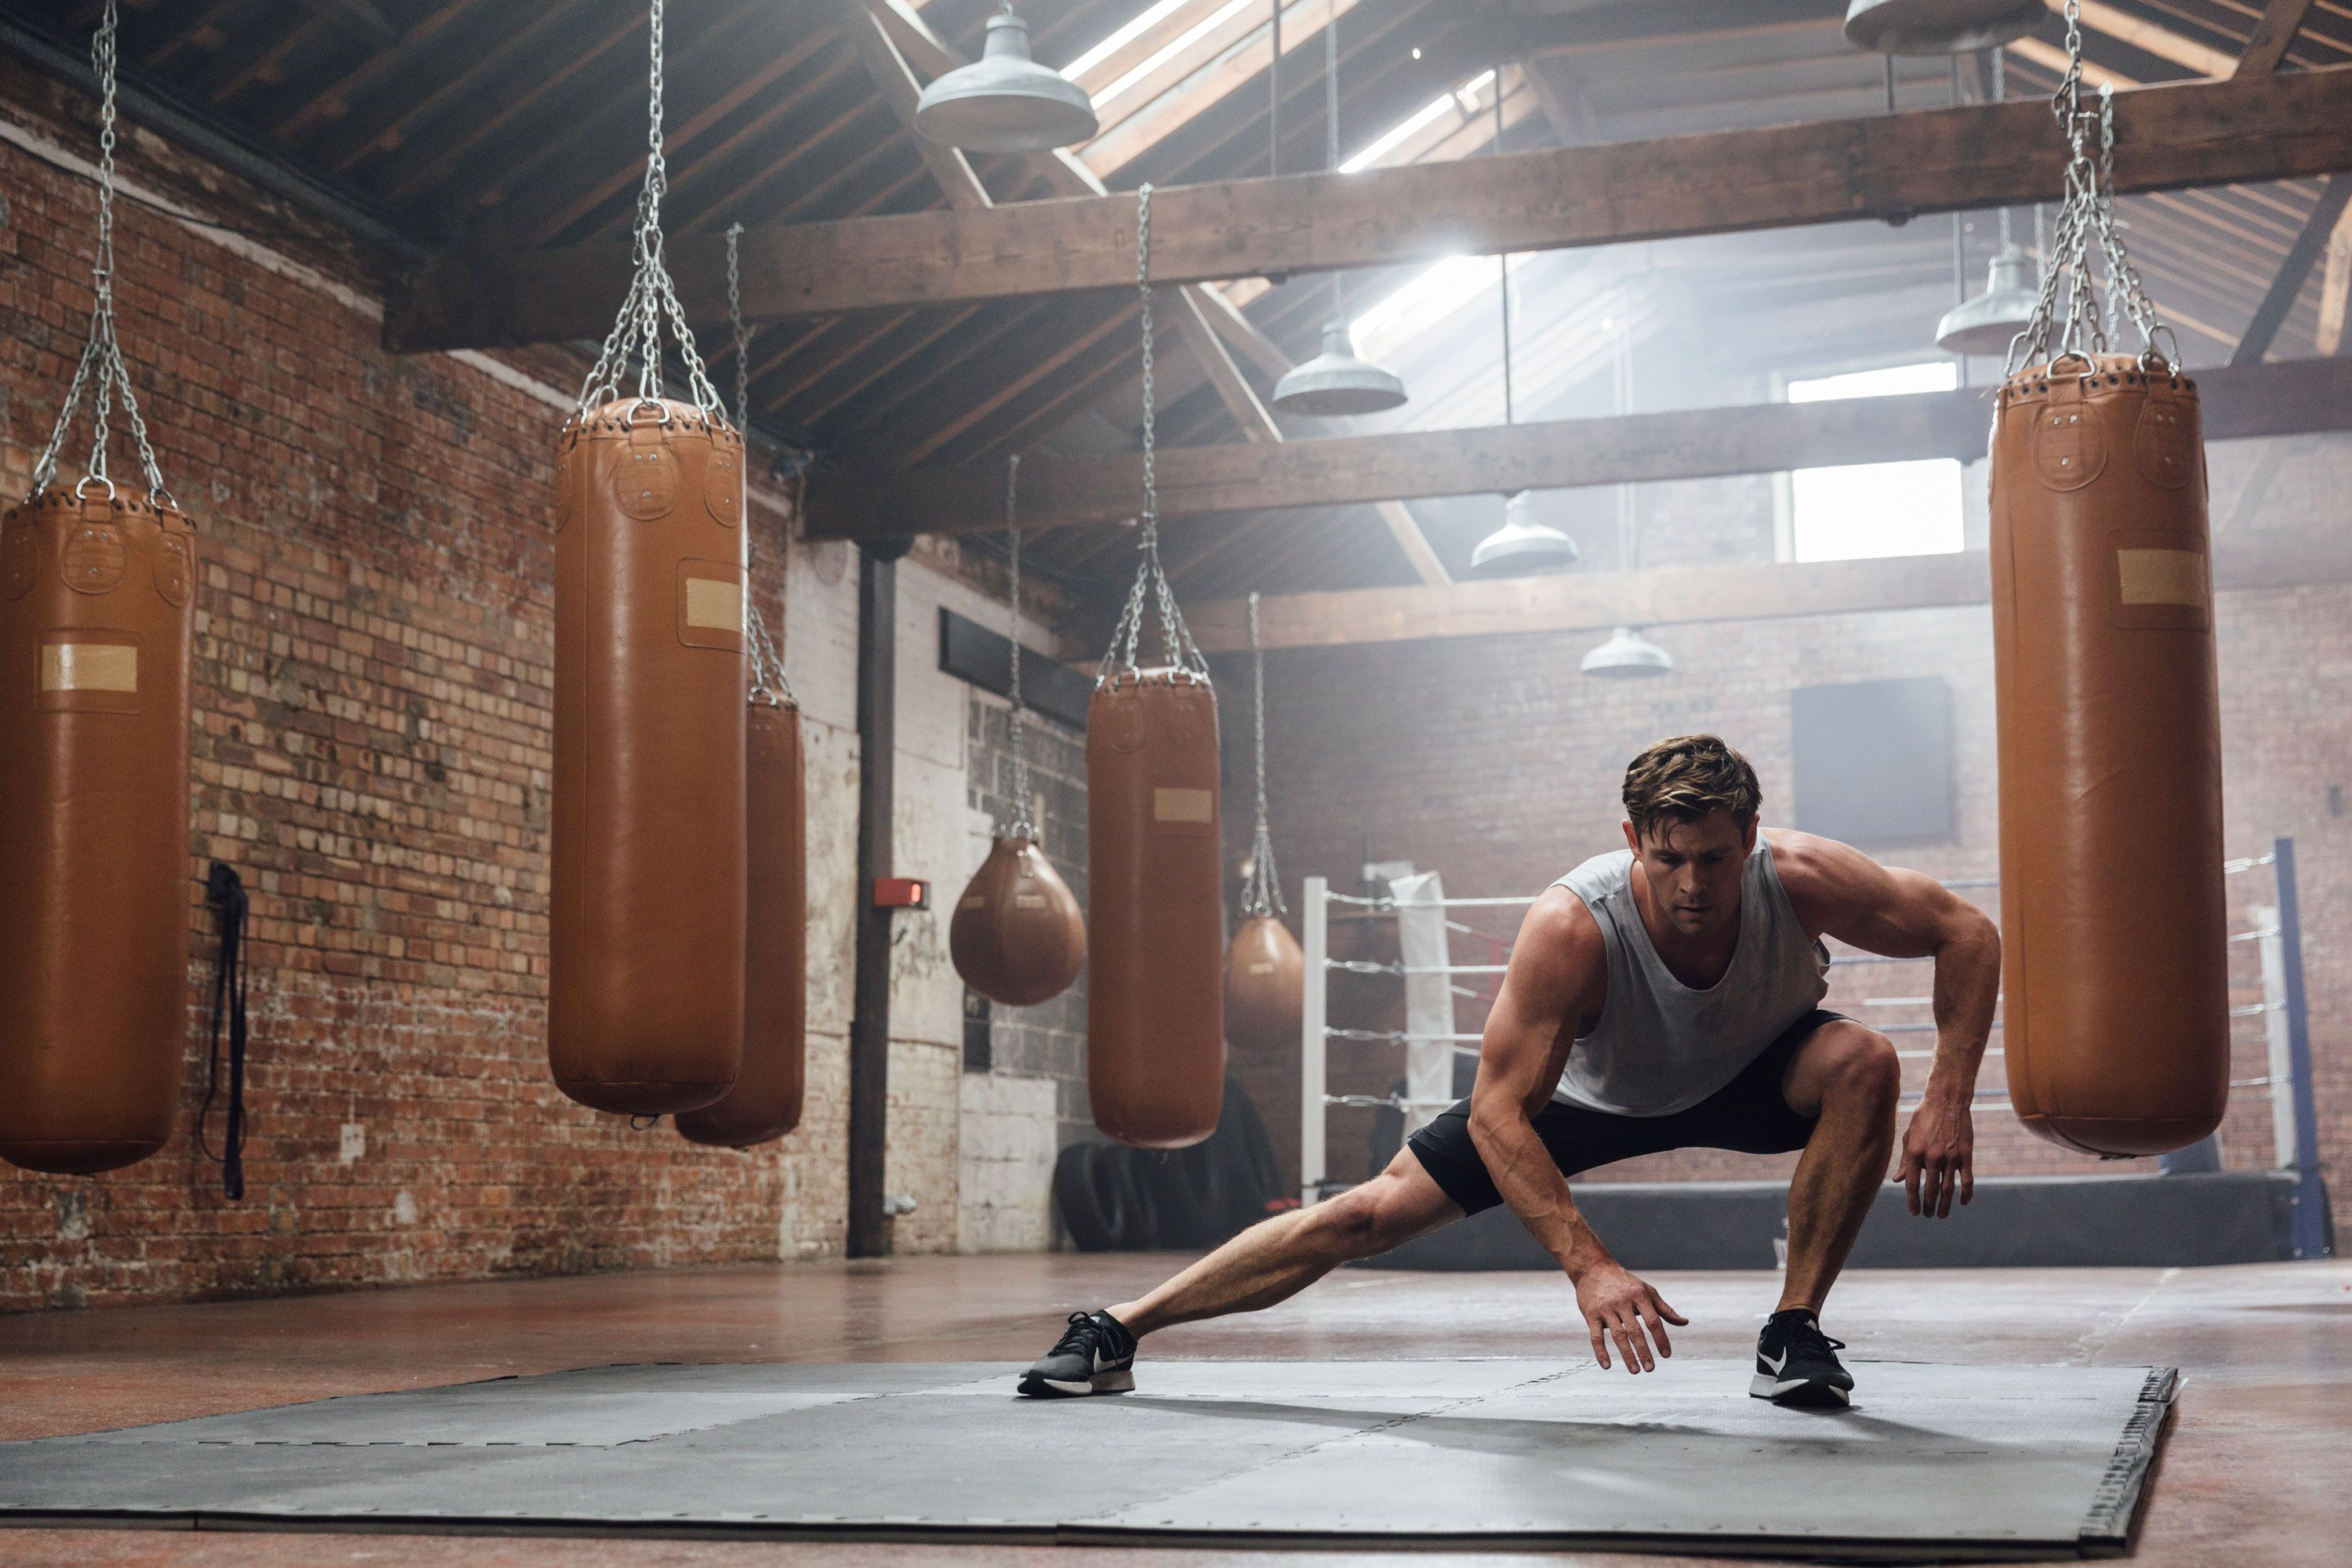 Build Muscle With This 20-Minute Bodyweight Workout From Chris Hemsworth's PT